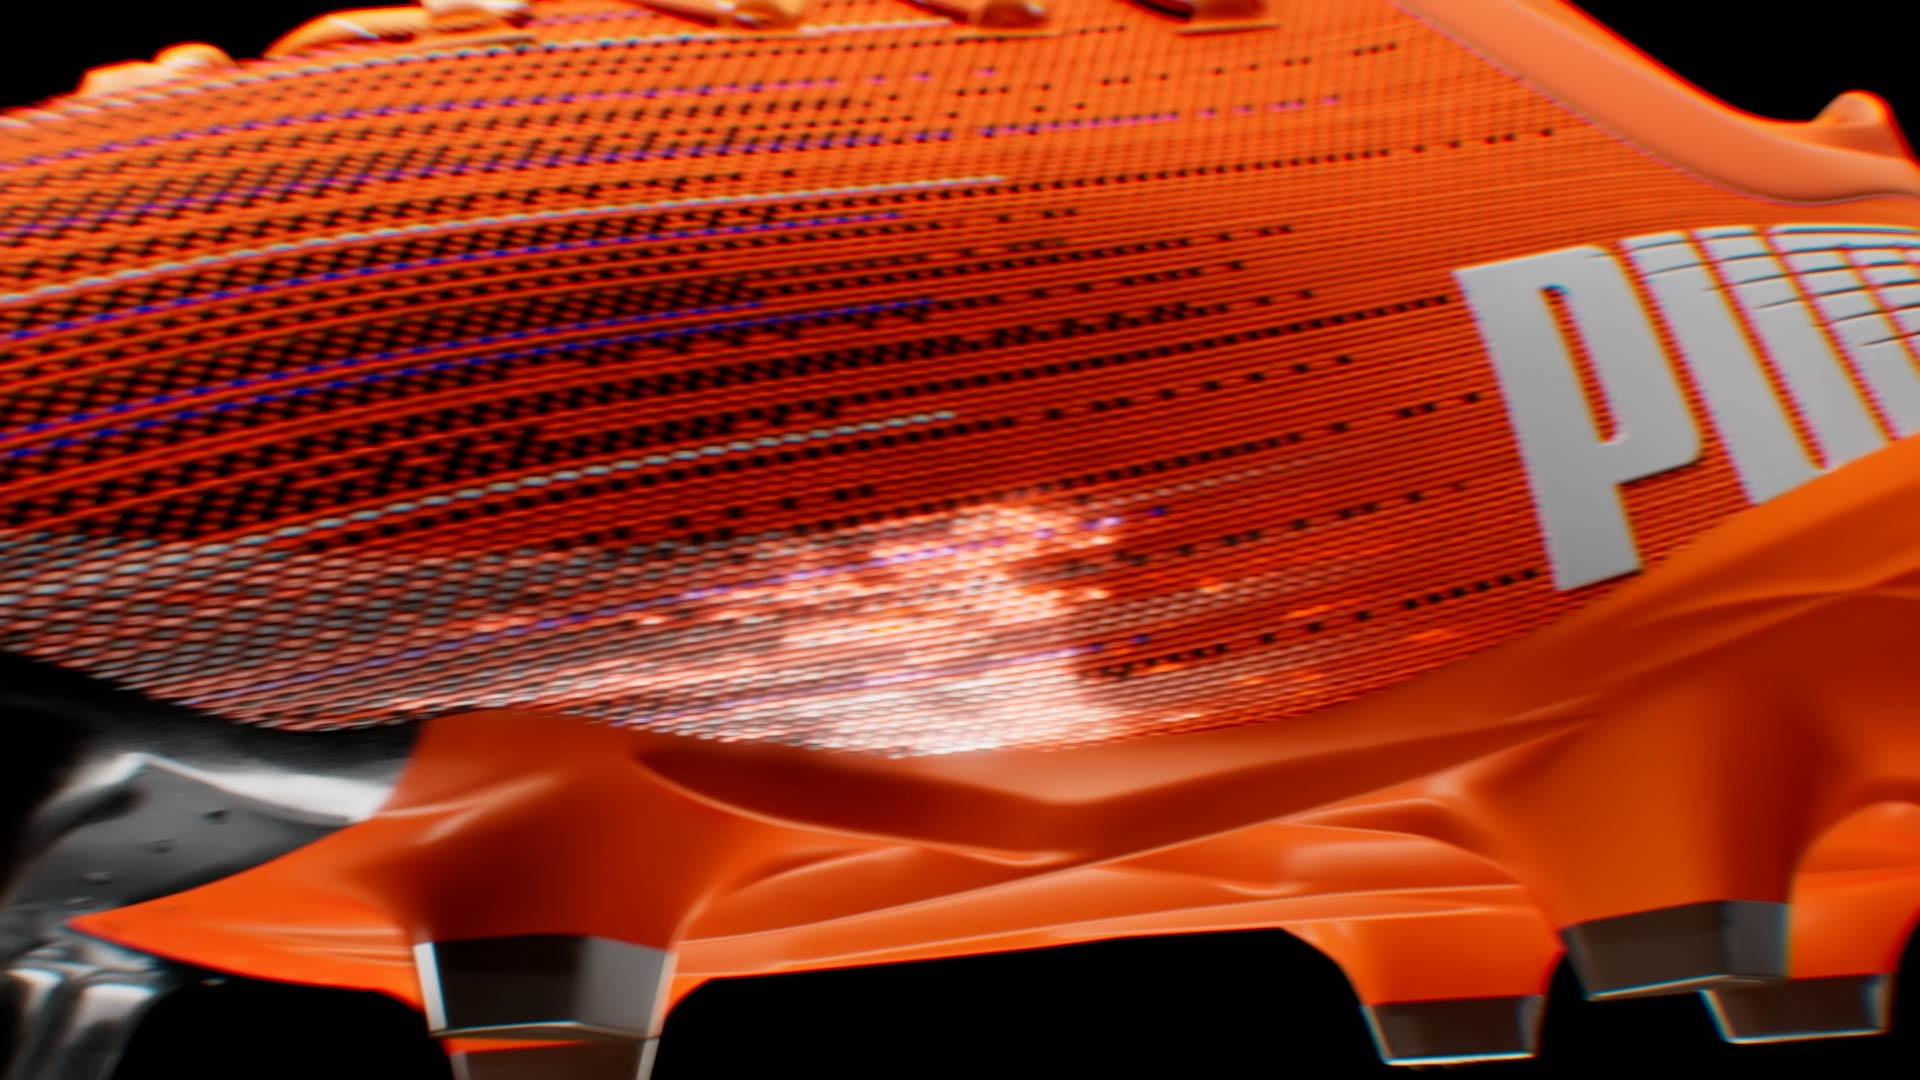 Motion Design animation of luminescent particles flowing around a soccer shoe